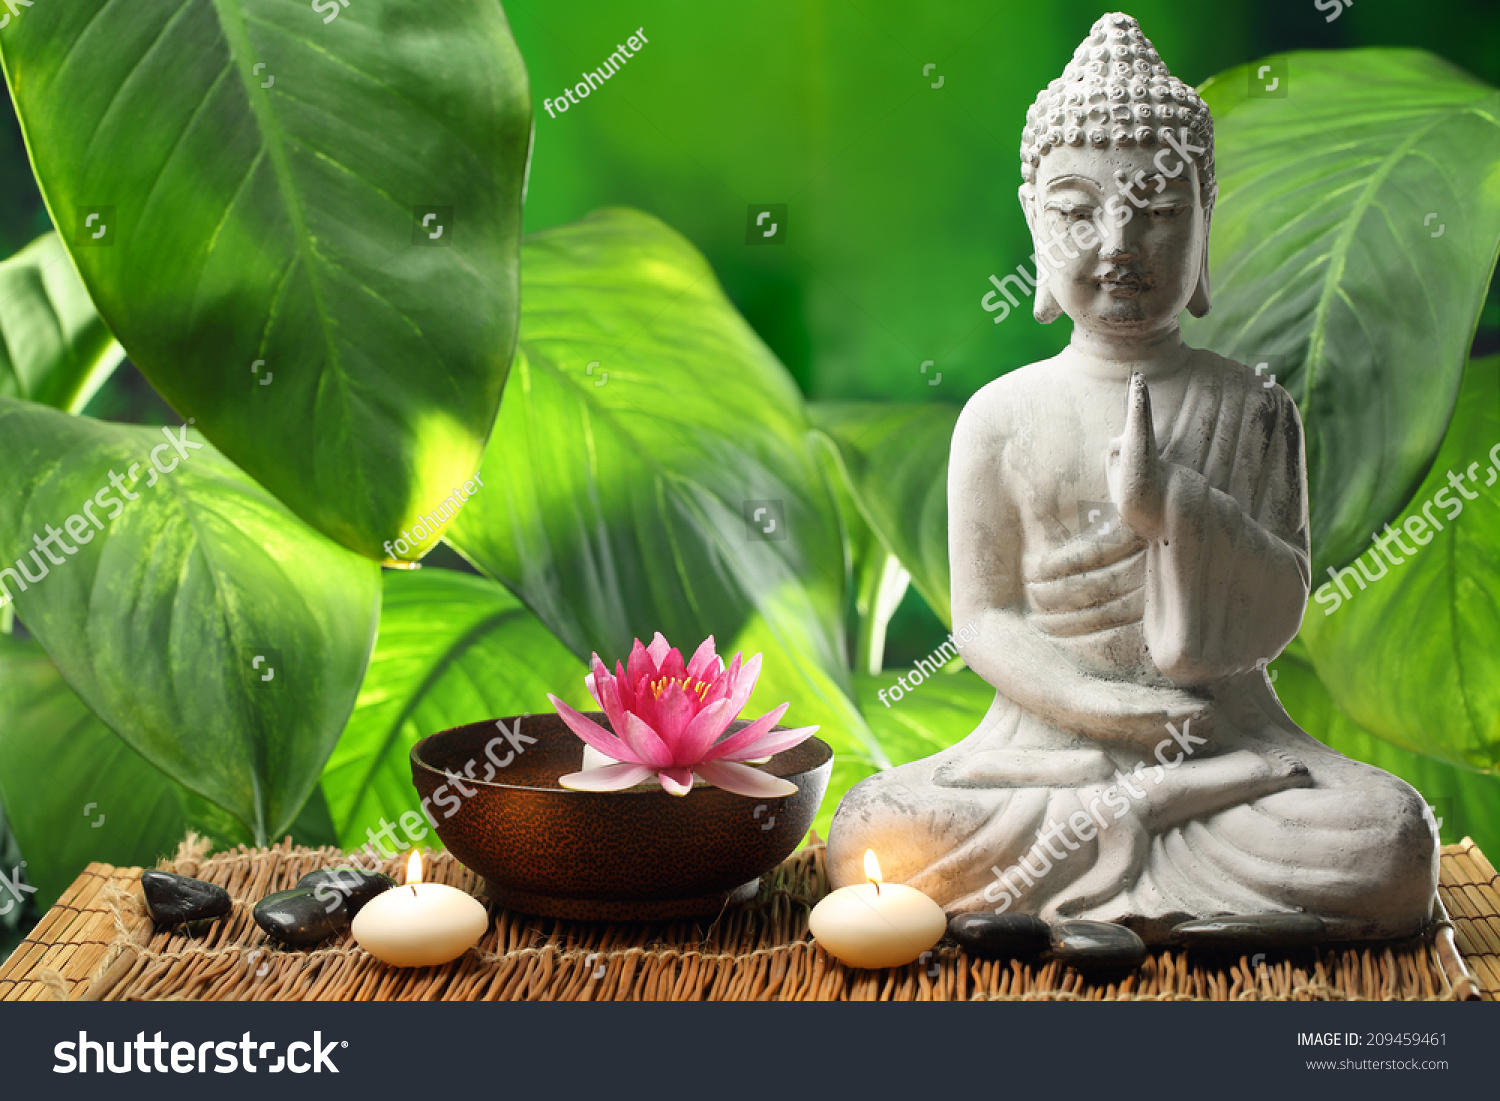 Buddha meditation lotus flower burning candles stock photo edit now buddha in meditation with lotus flower and burning candles izmirmasajfo